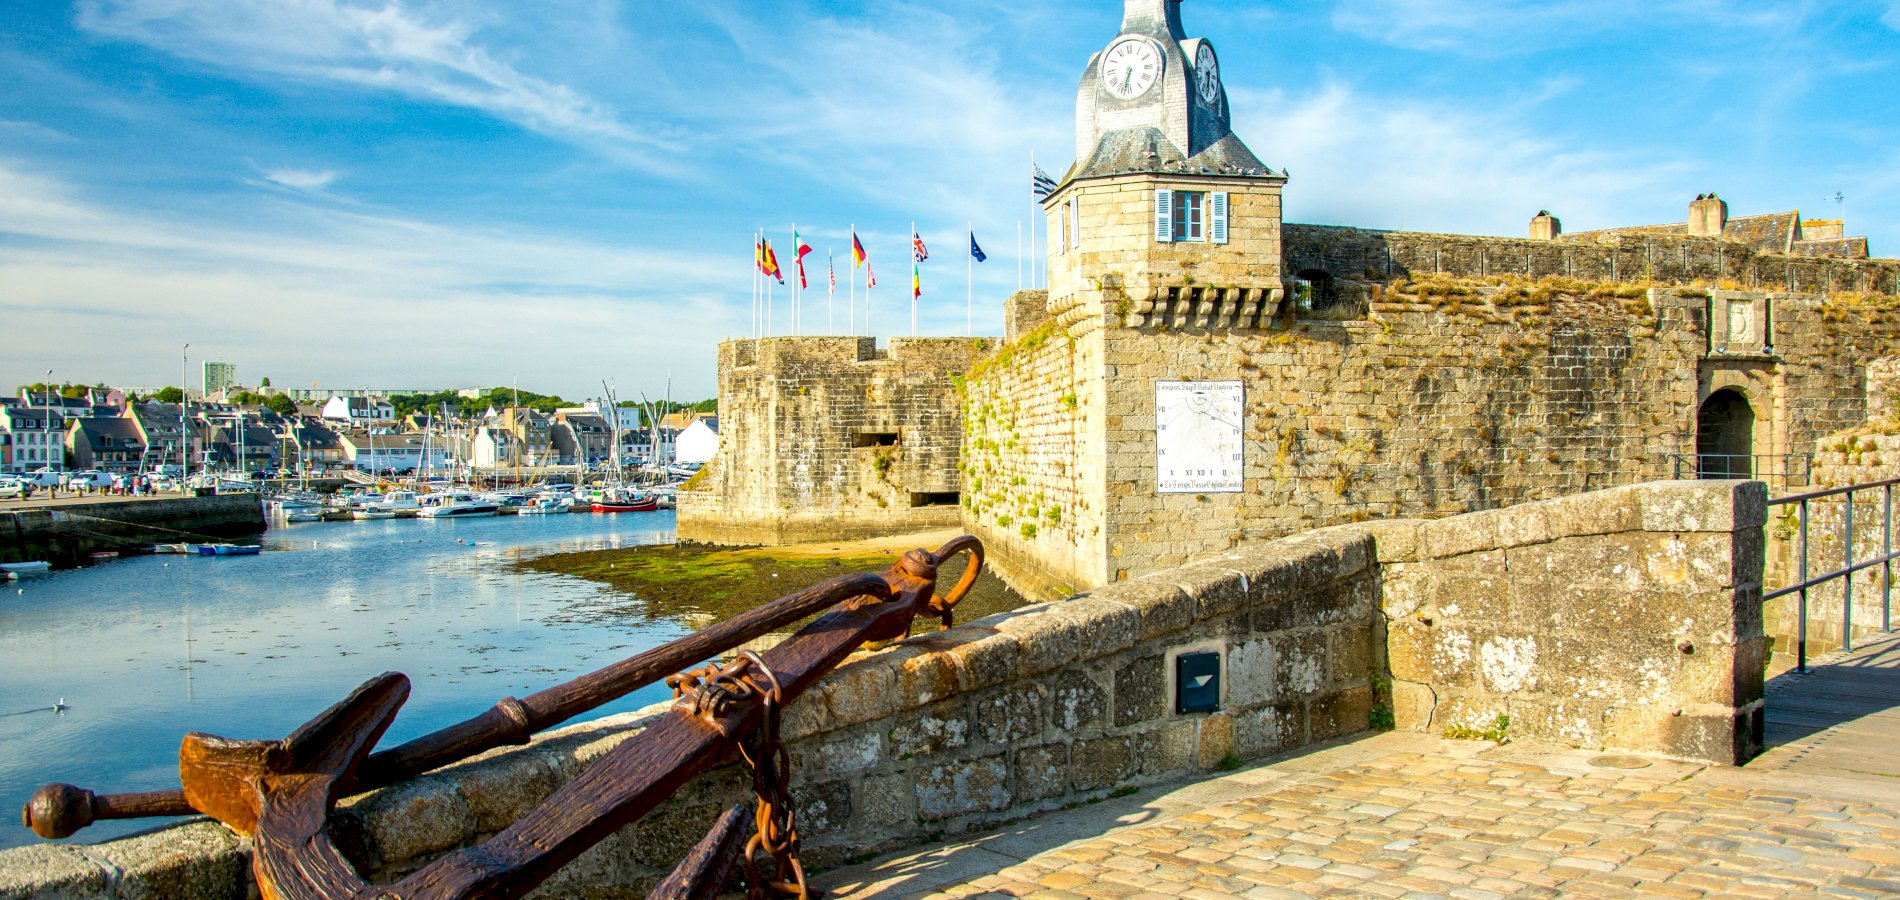 Ophorus Tours - Concarneau & Pont-Aven Small Group Private Shore Excursion From Brest